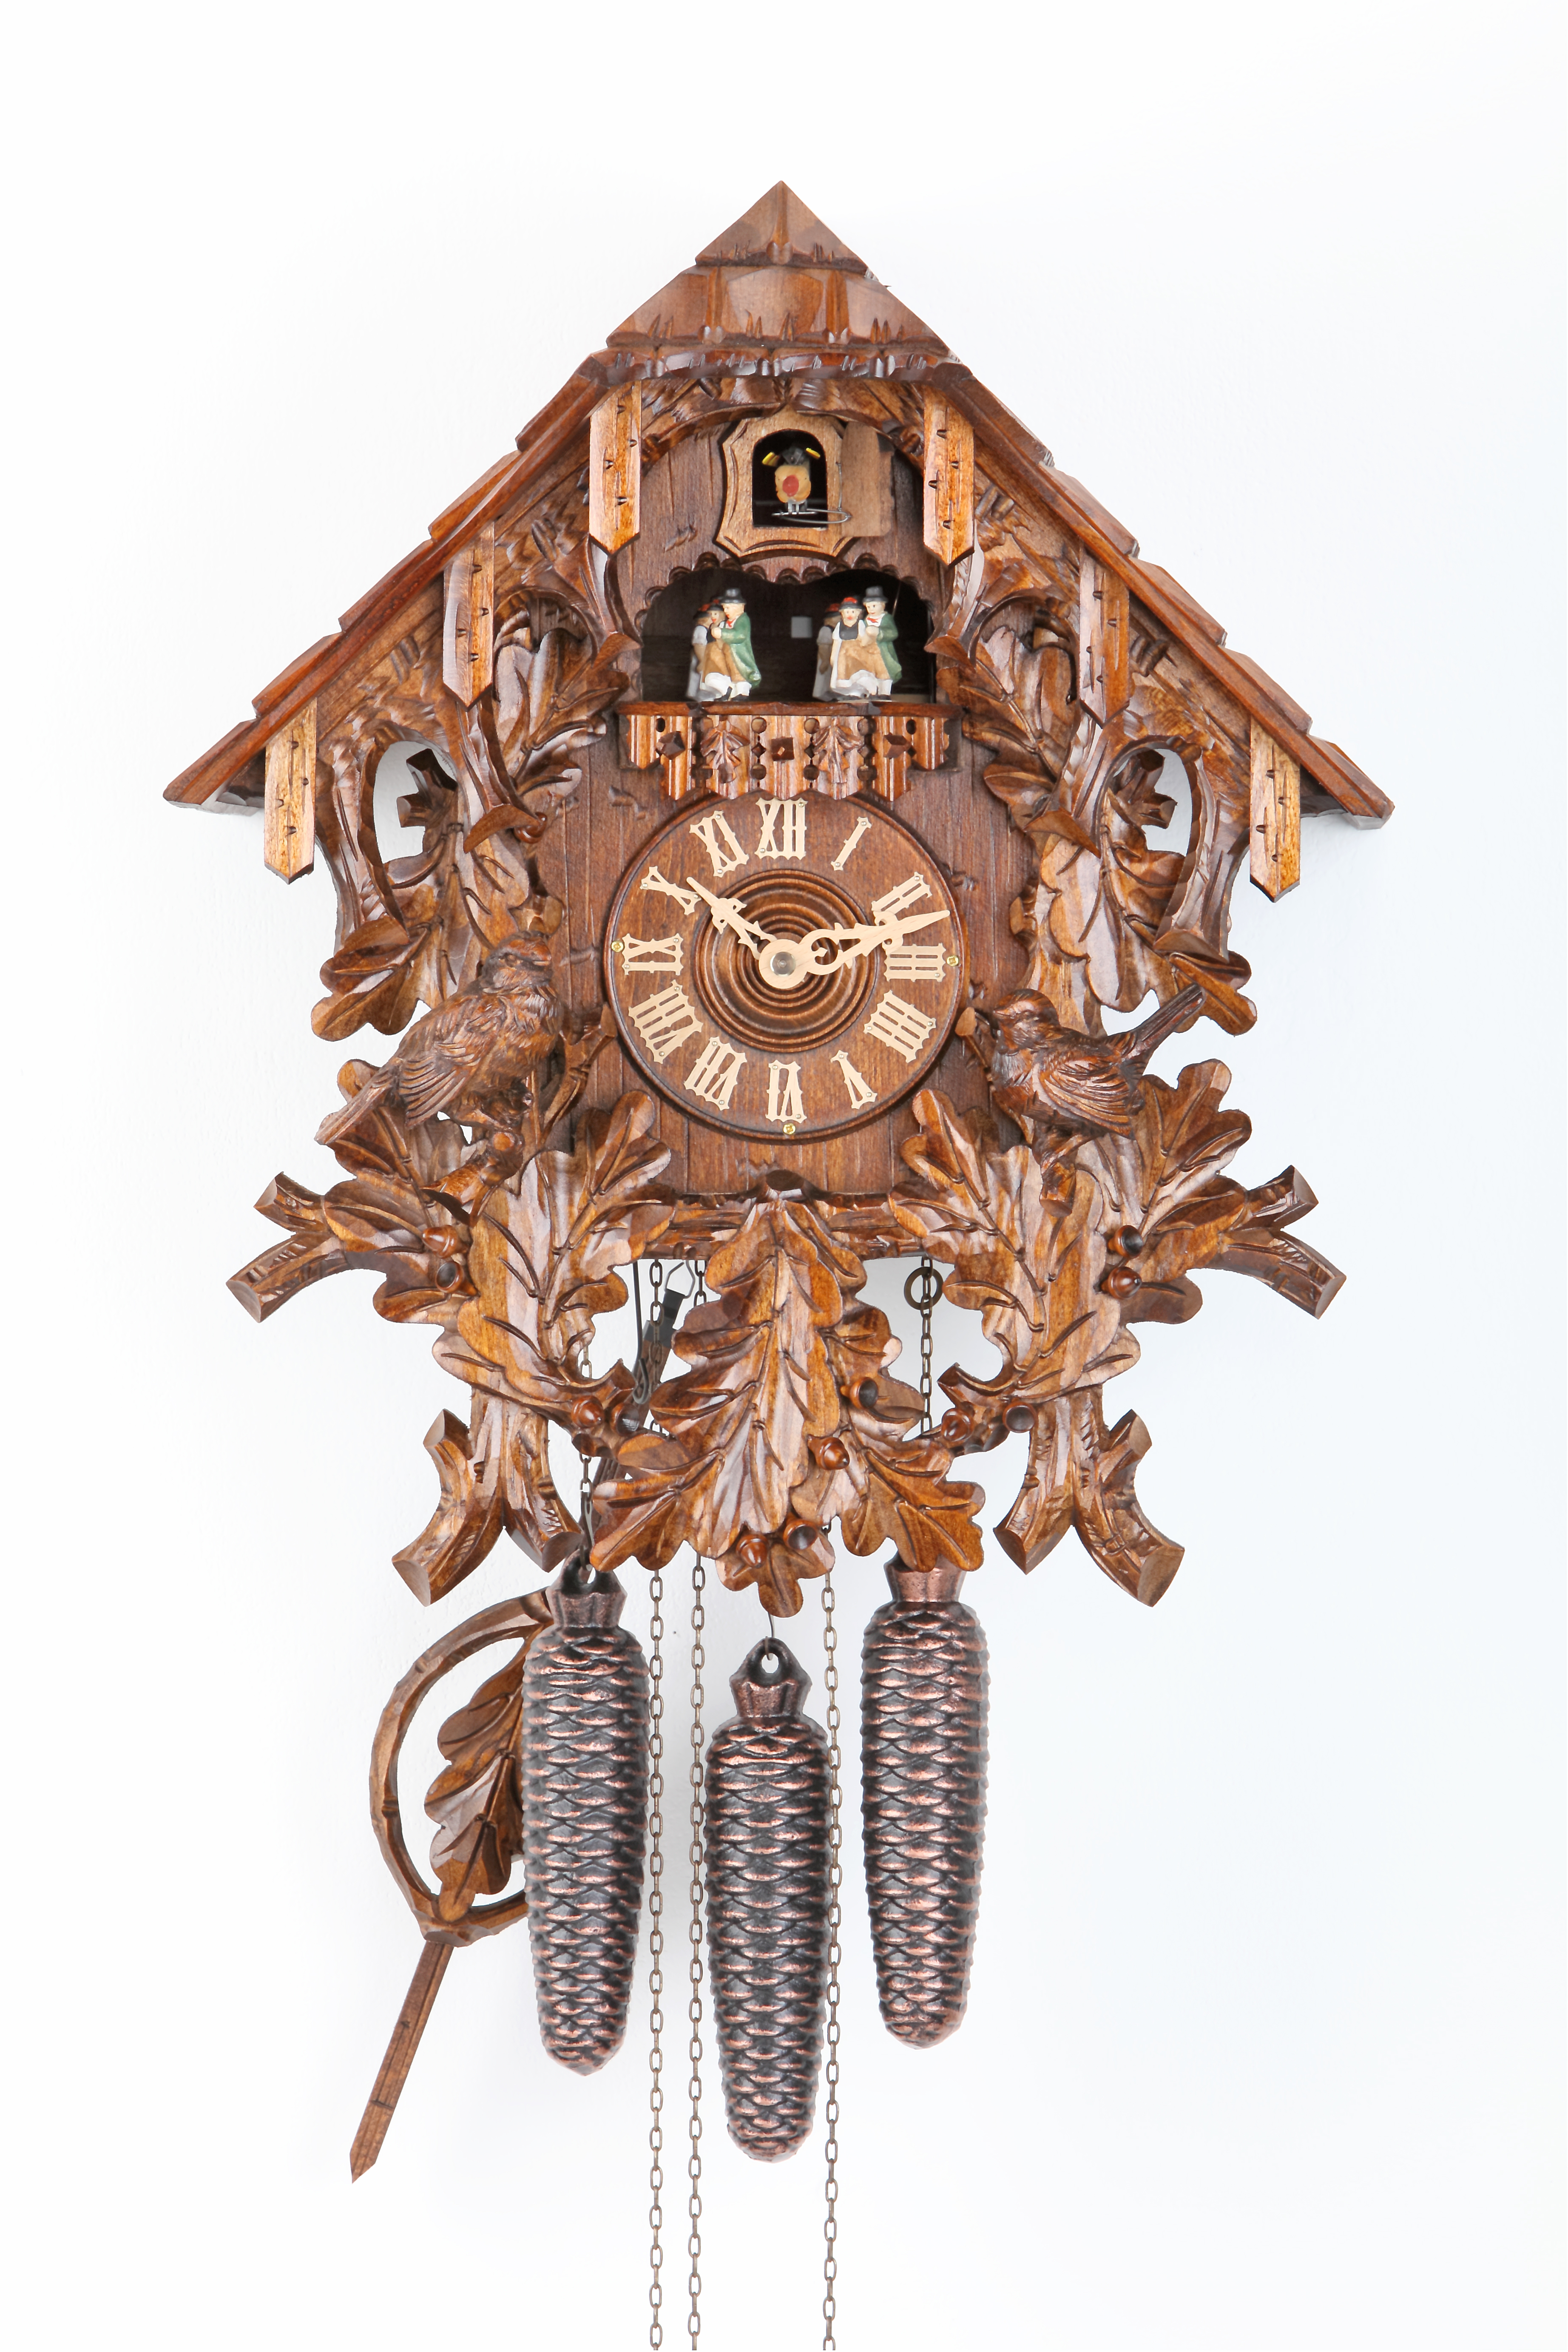 8 Days Music Dancer  Cuckoo Clock Black Forest House with sparrows